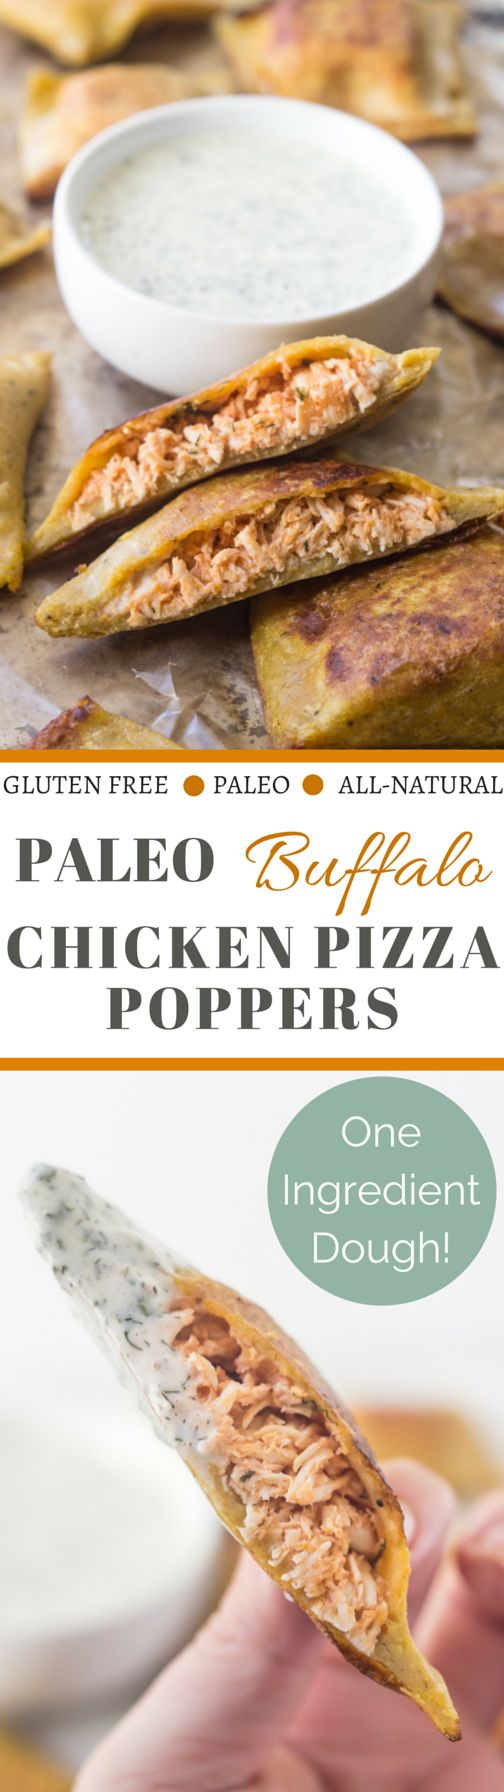 Paleo Buffalo Chicken Pizza Poppers - one ingredient dough! Plus they're served with a ridiculously good Paleo ranch dressing! A great Paleo appetizer paleo mayo